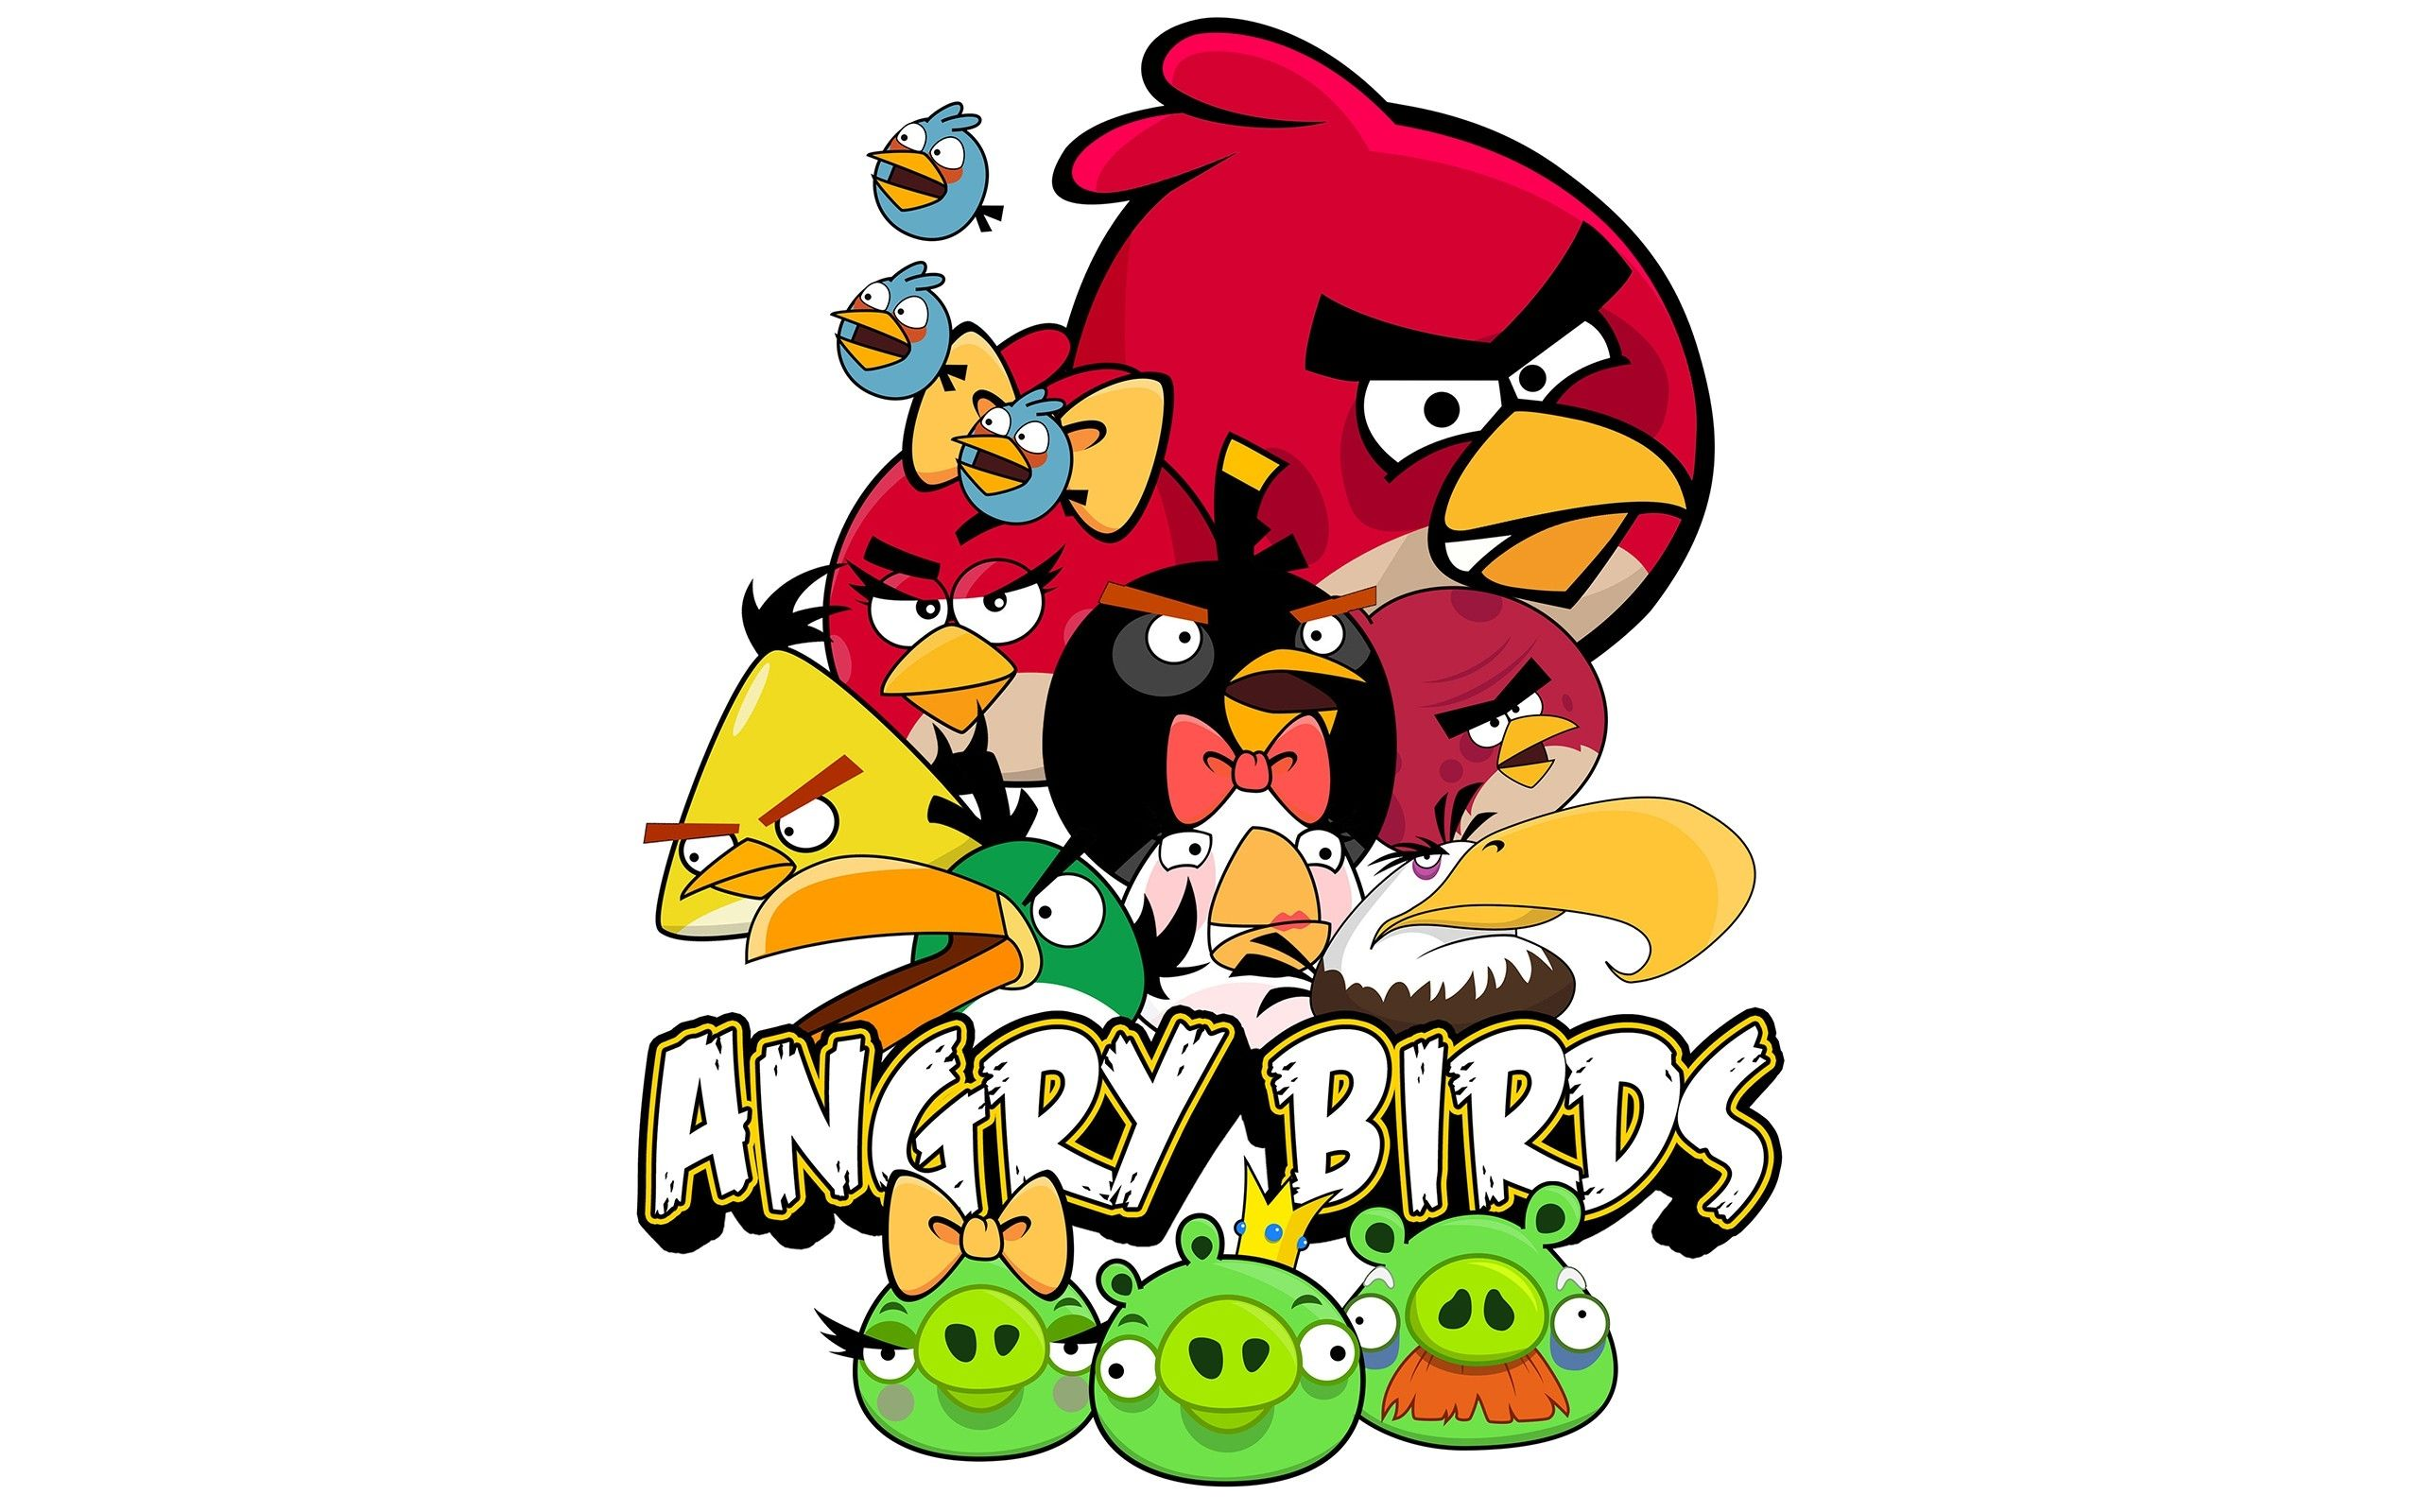 Angry Birds Widescreen Free Download Wallpapers HD O.K ...